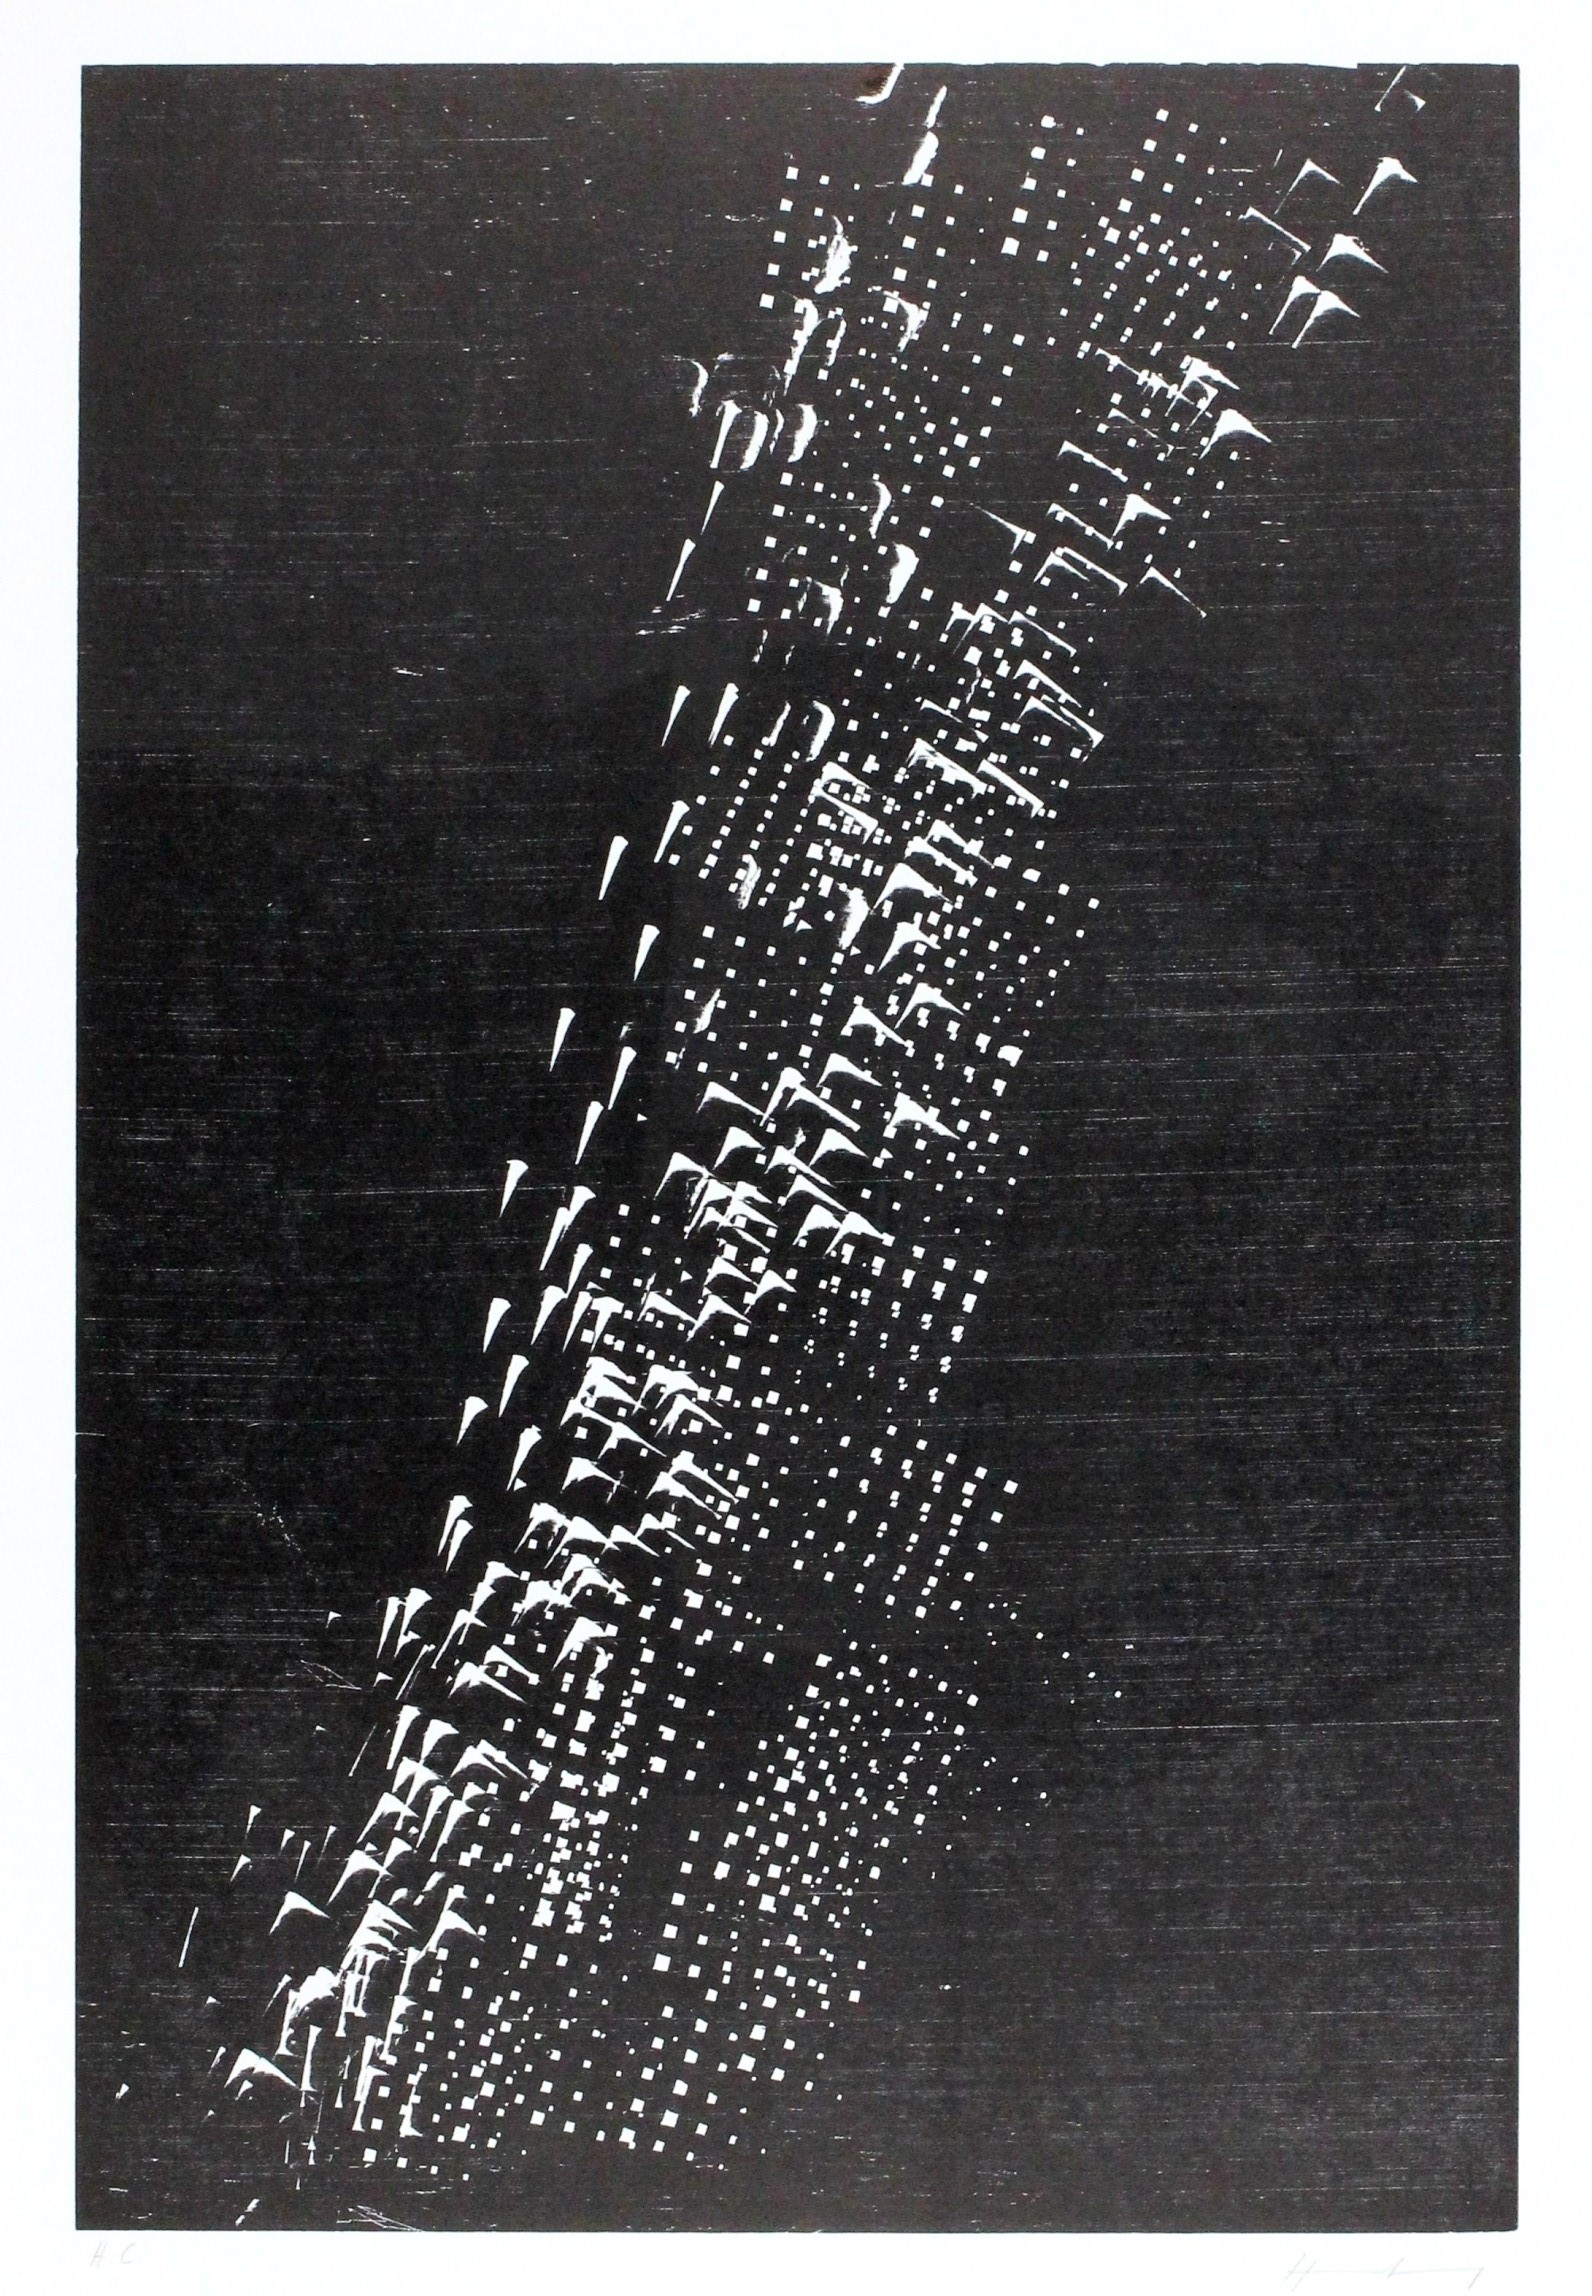 H-1-1976 by Hans Hartung